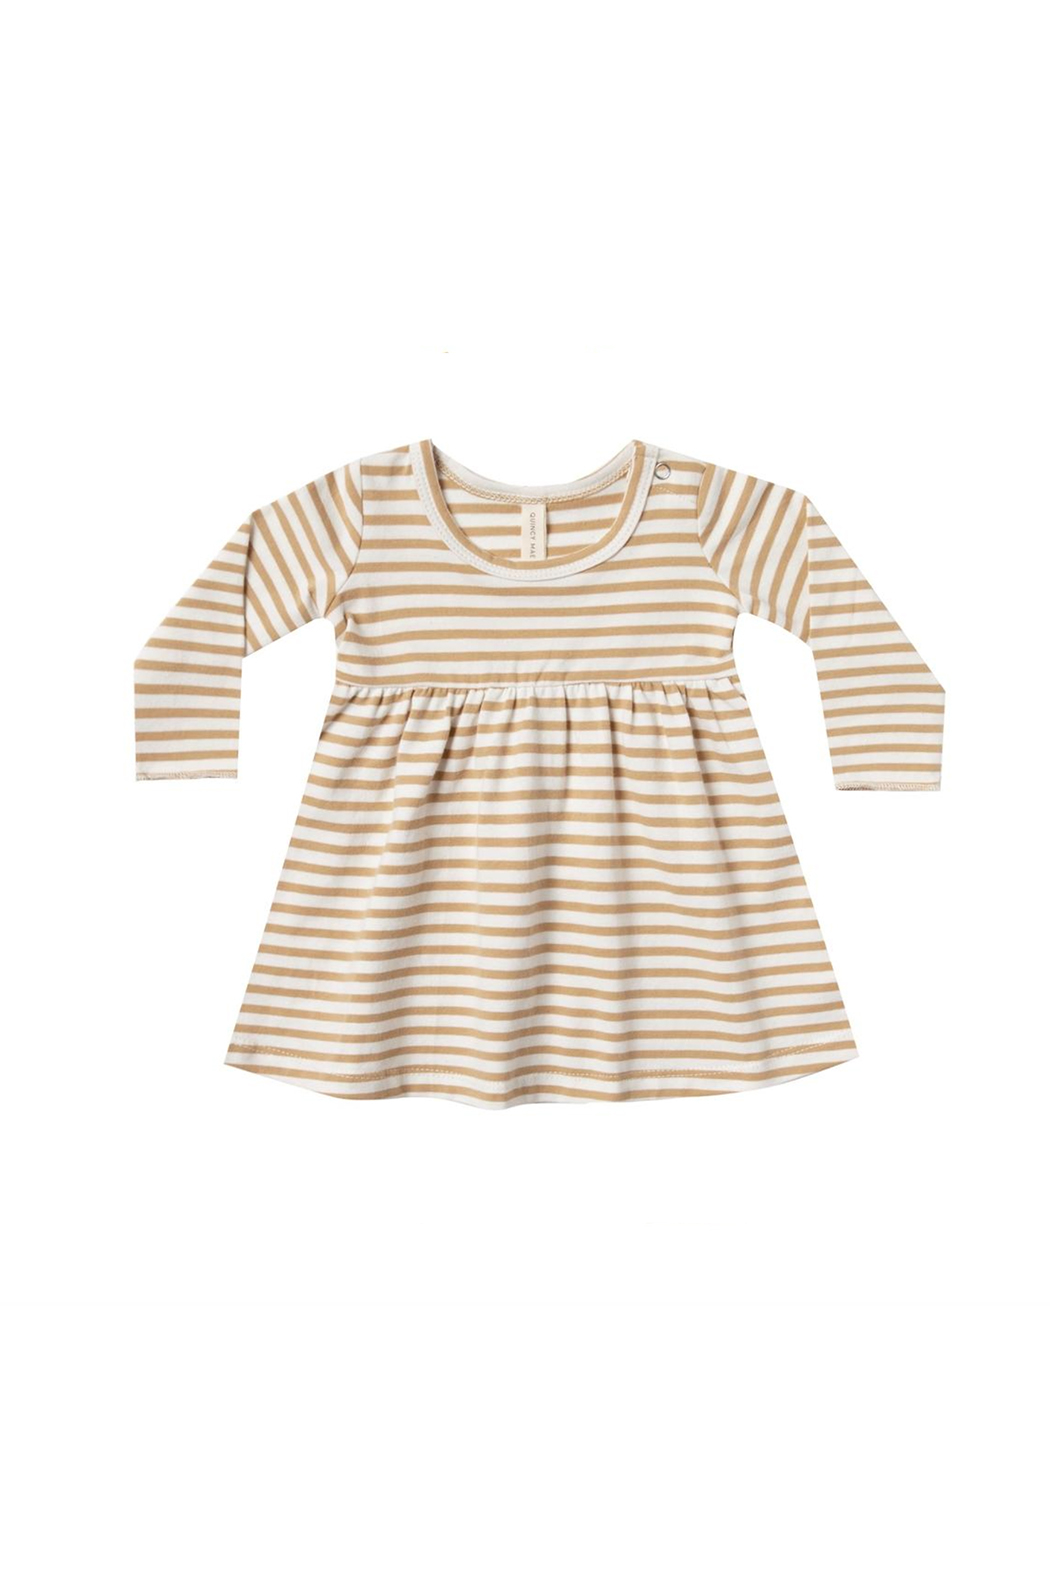 Quincy Mae Baby Dress With Bloomers - Main Image